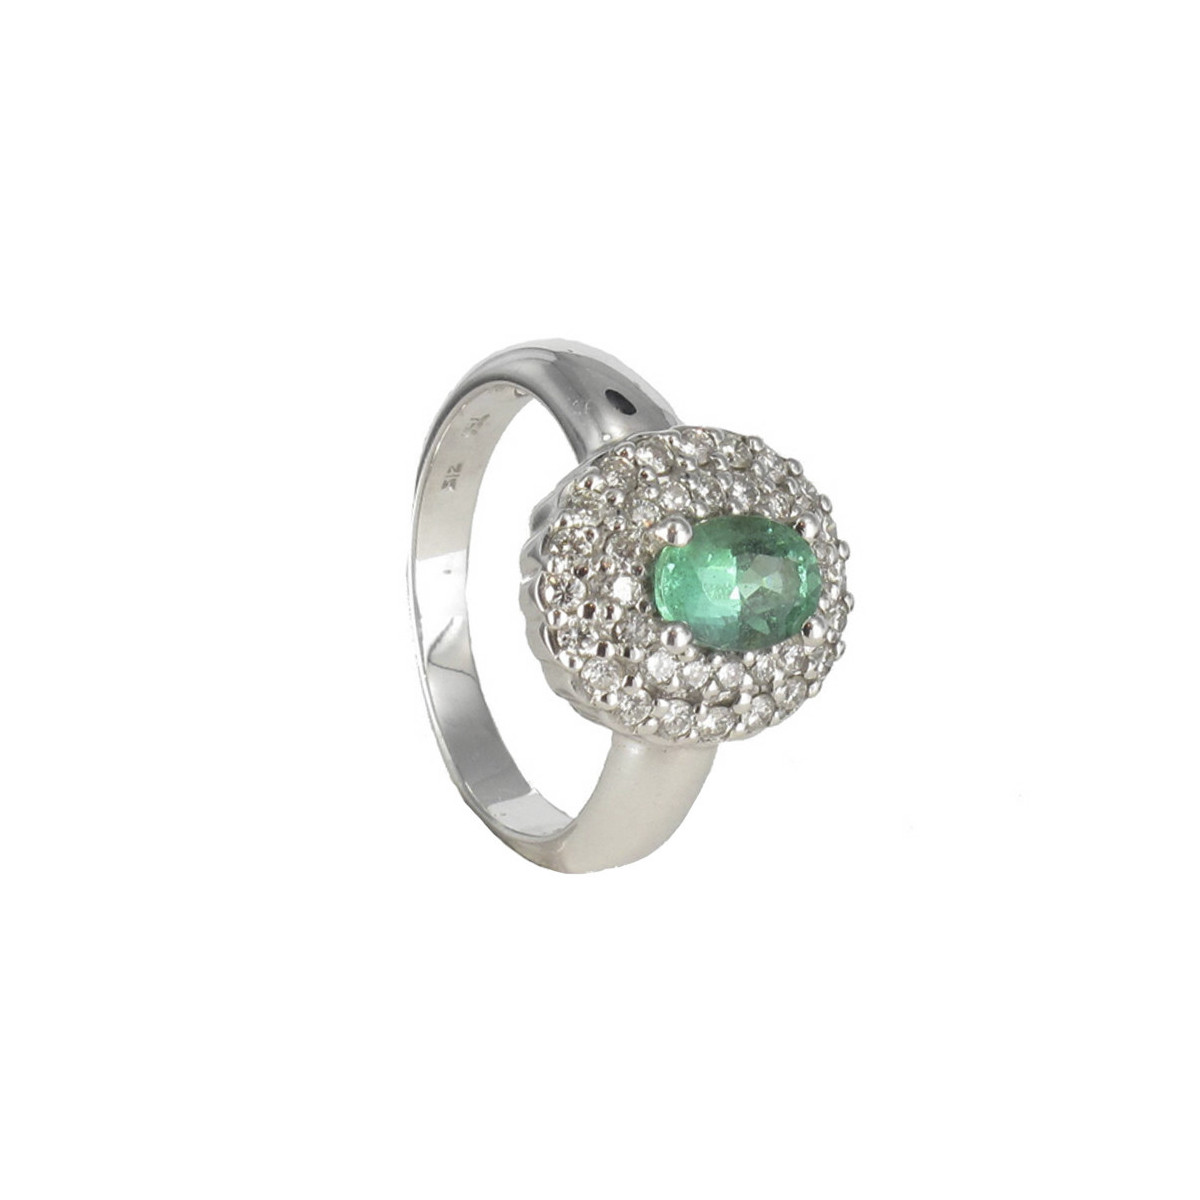 GOLD EMERALD RING AND DIAMONDS 0.52 KTES